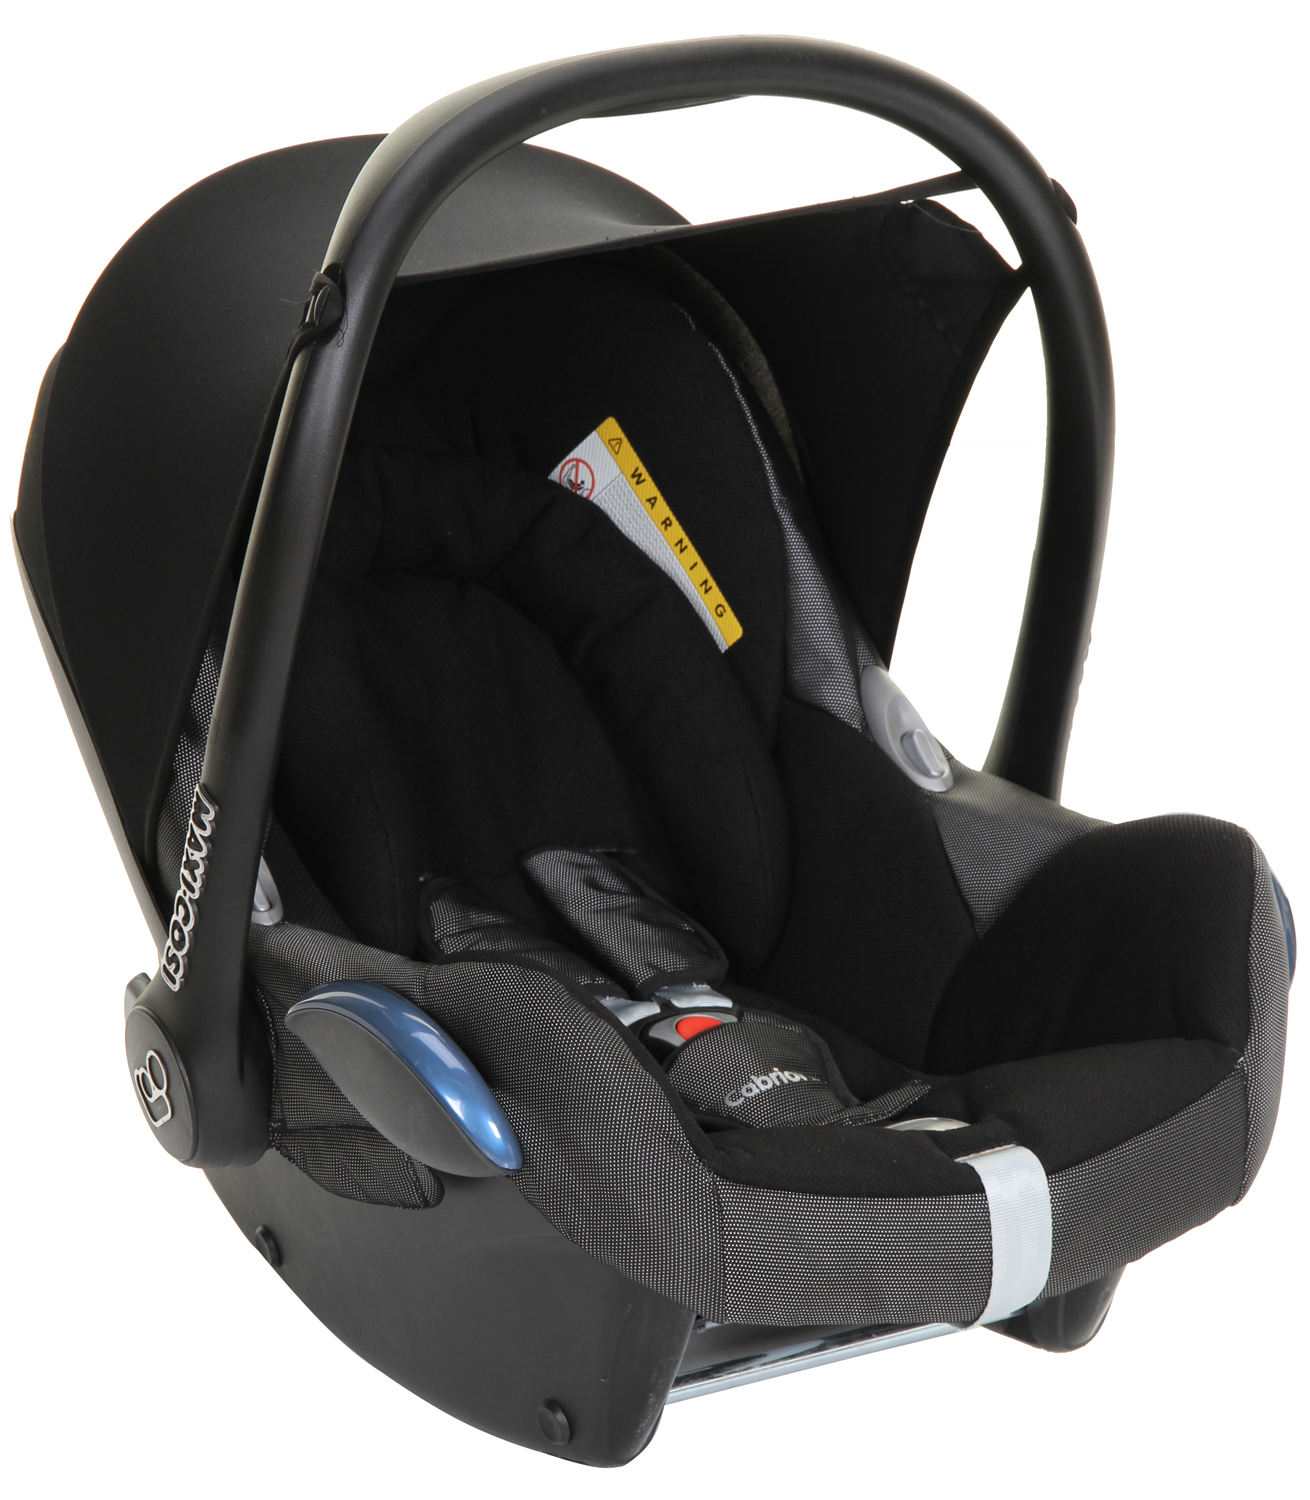 Maxi Cosi Cabriofix Baby Car Seat Black Reflection